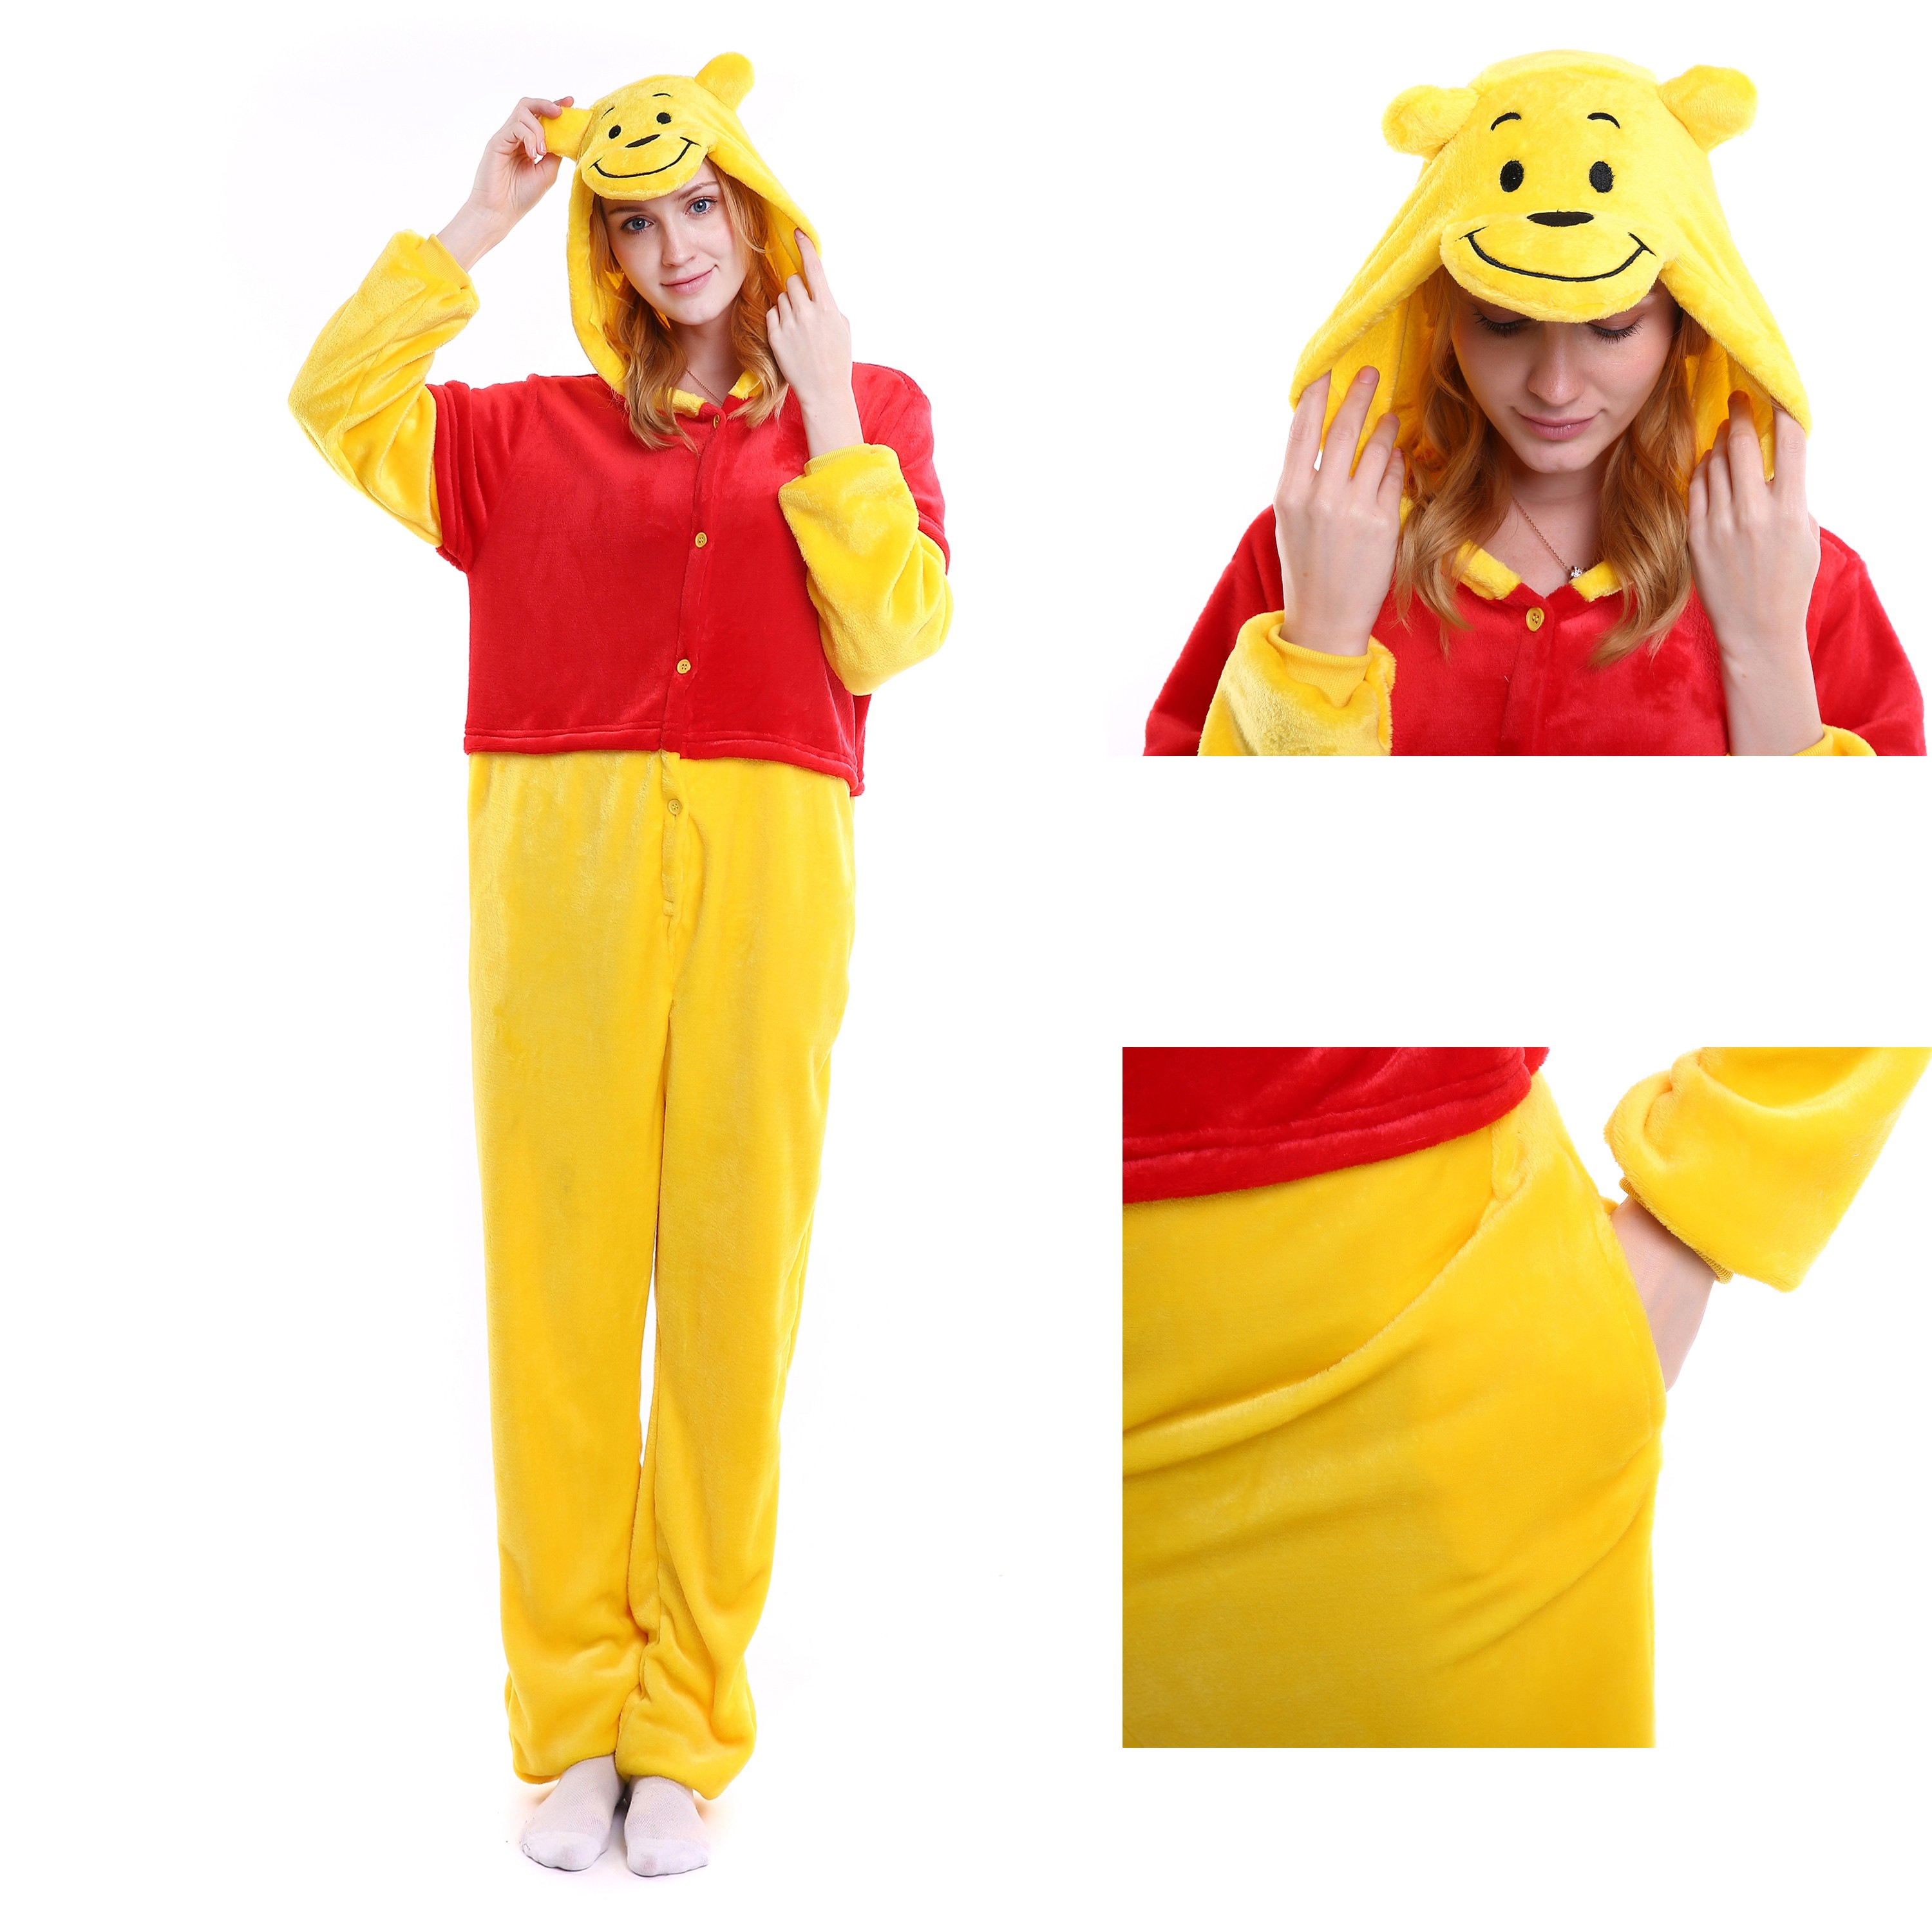 6976d58073 Winnie the Pooh Onesie for Adult Animal Kigurumi Disney Pajama Party  Costumes